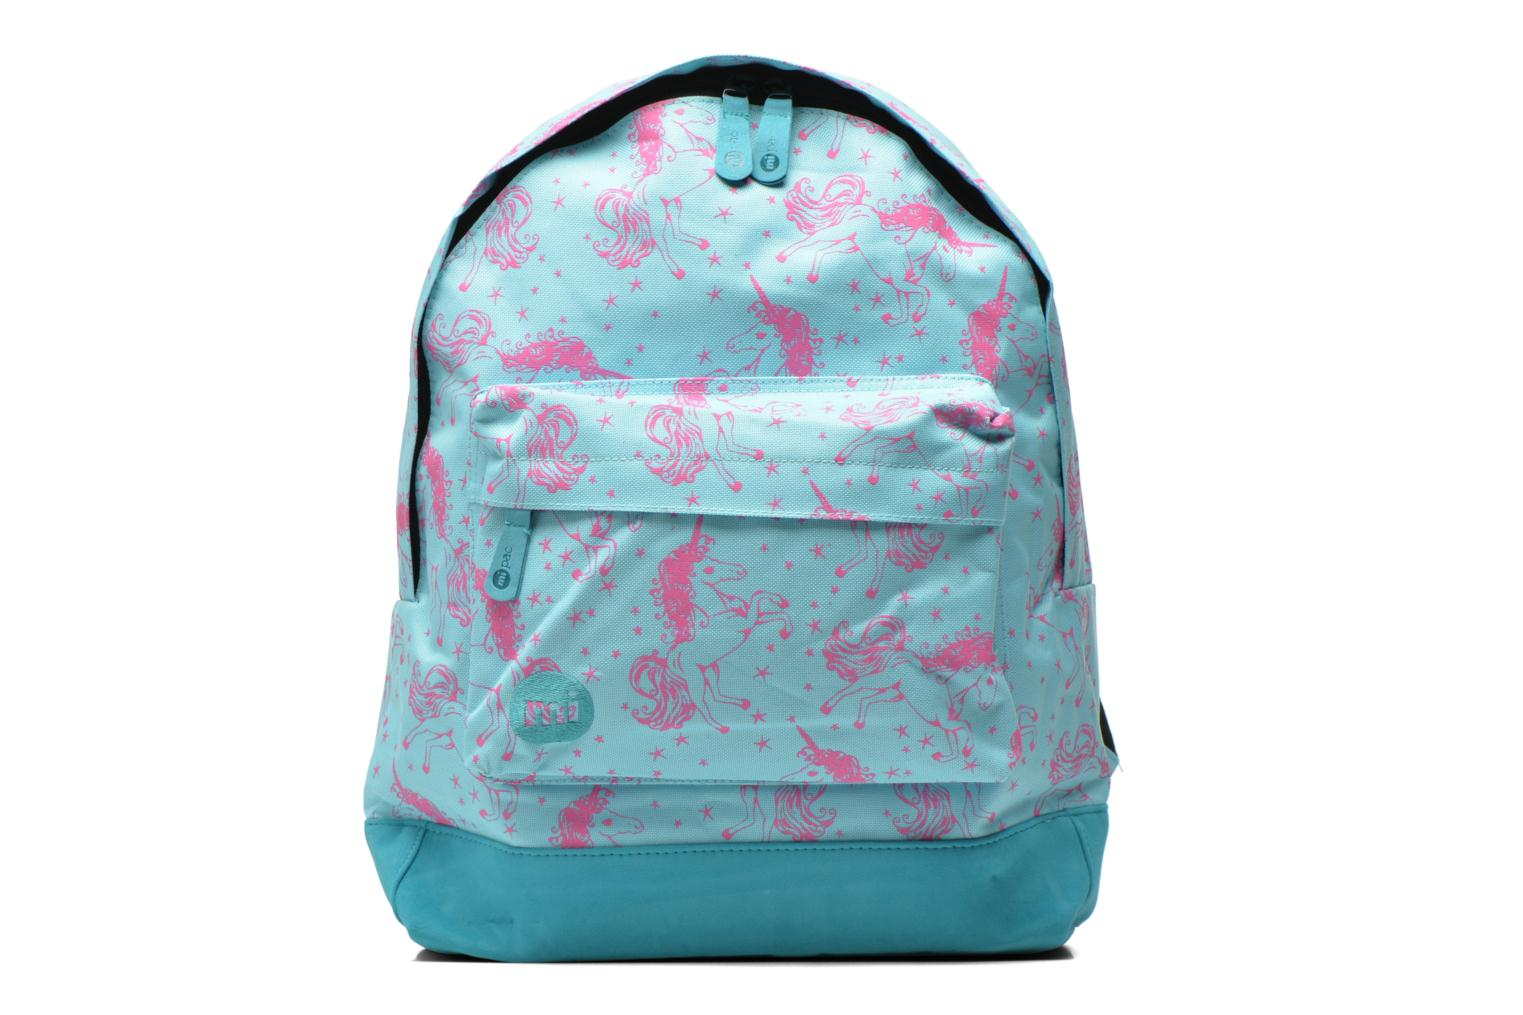 Custom Backpack Aqua/pink Unicorns